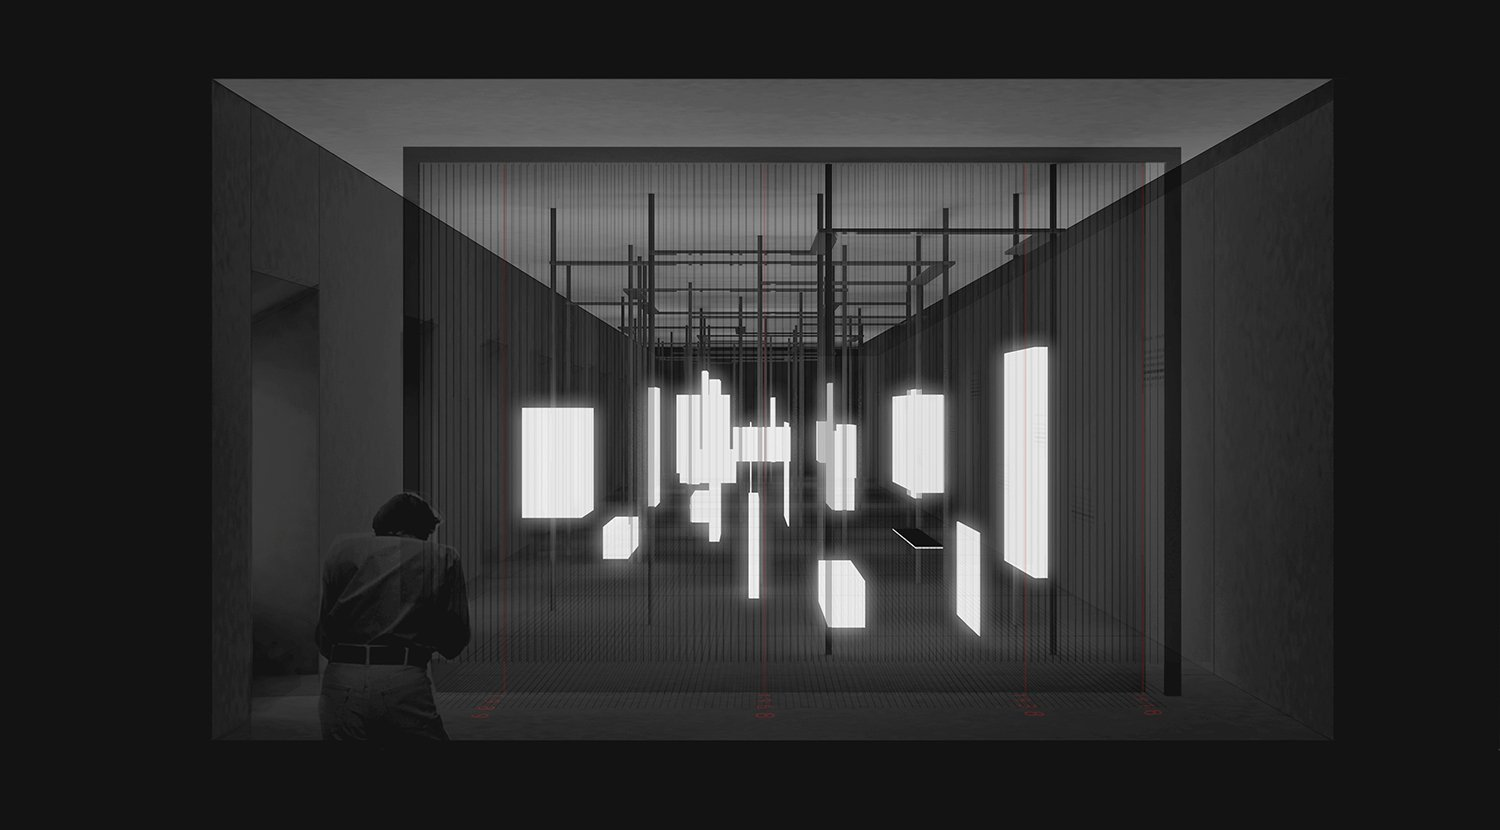 Enlighted view in the darkened room Schluderarchitektur with Tabanlioglu Architects